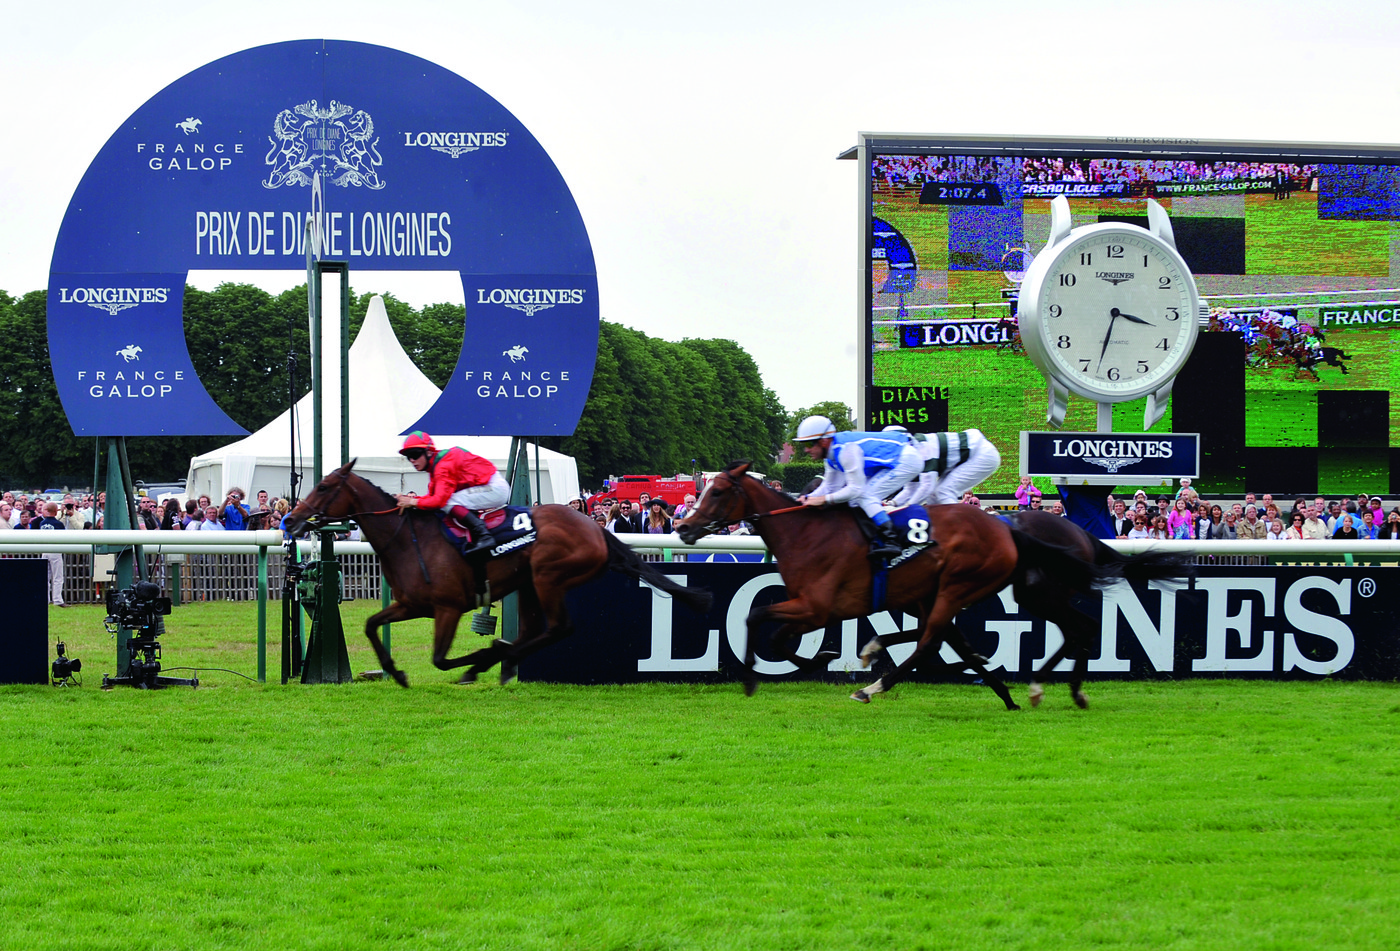 Longines Corporate Event: Longines: 180 years of elegance, tradition and performance 26